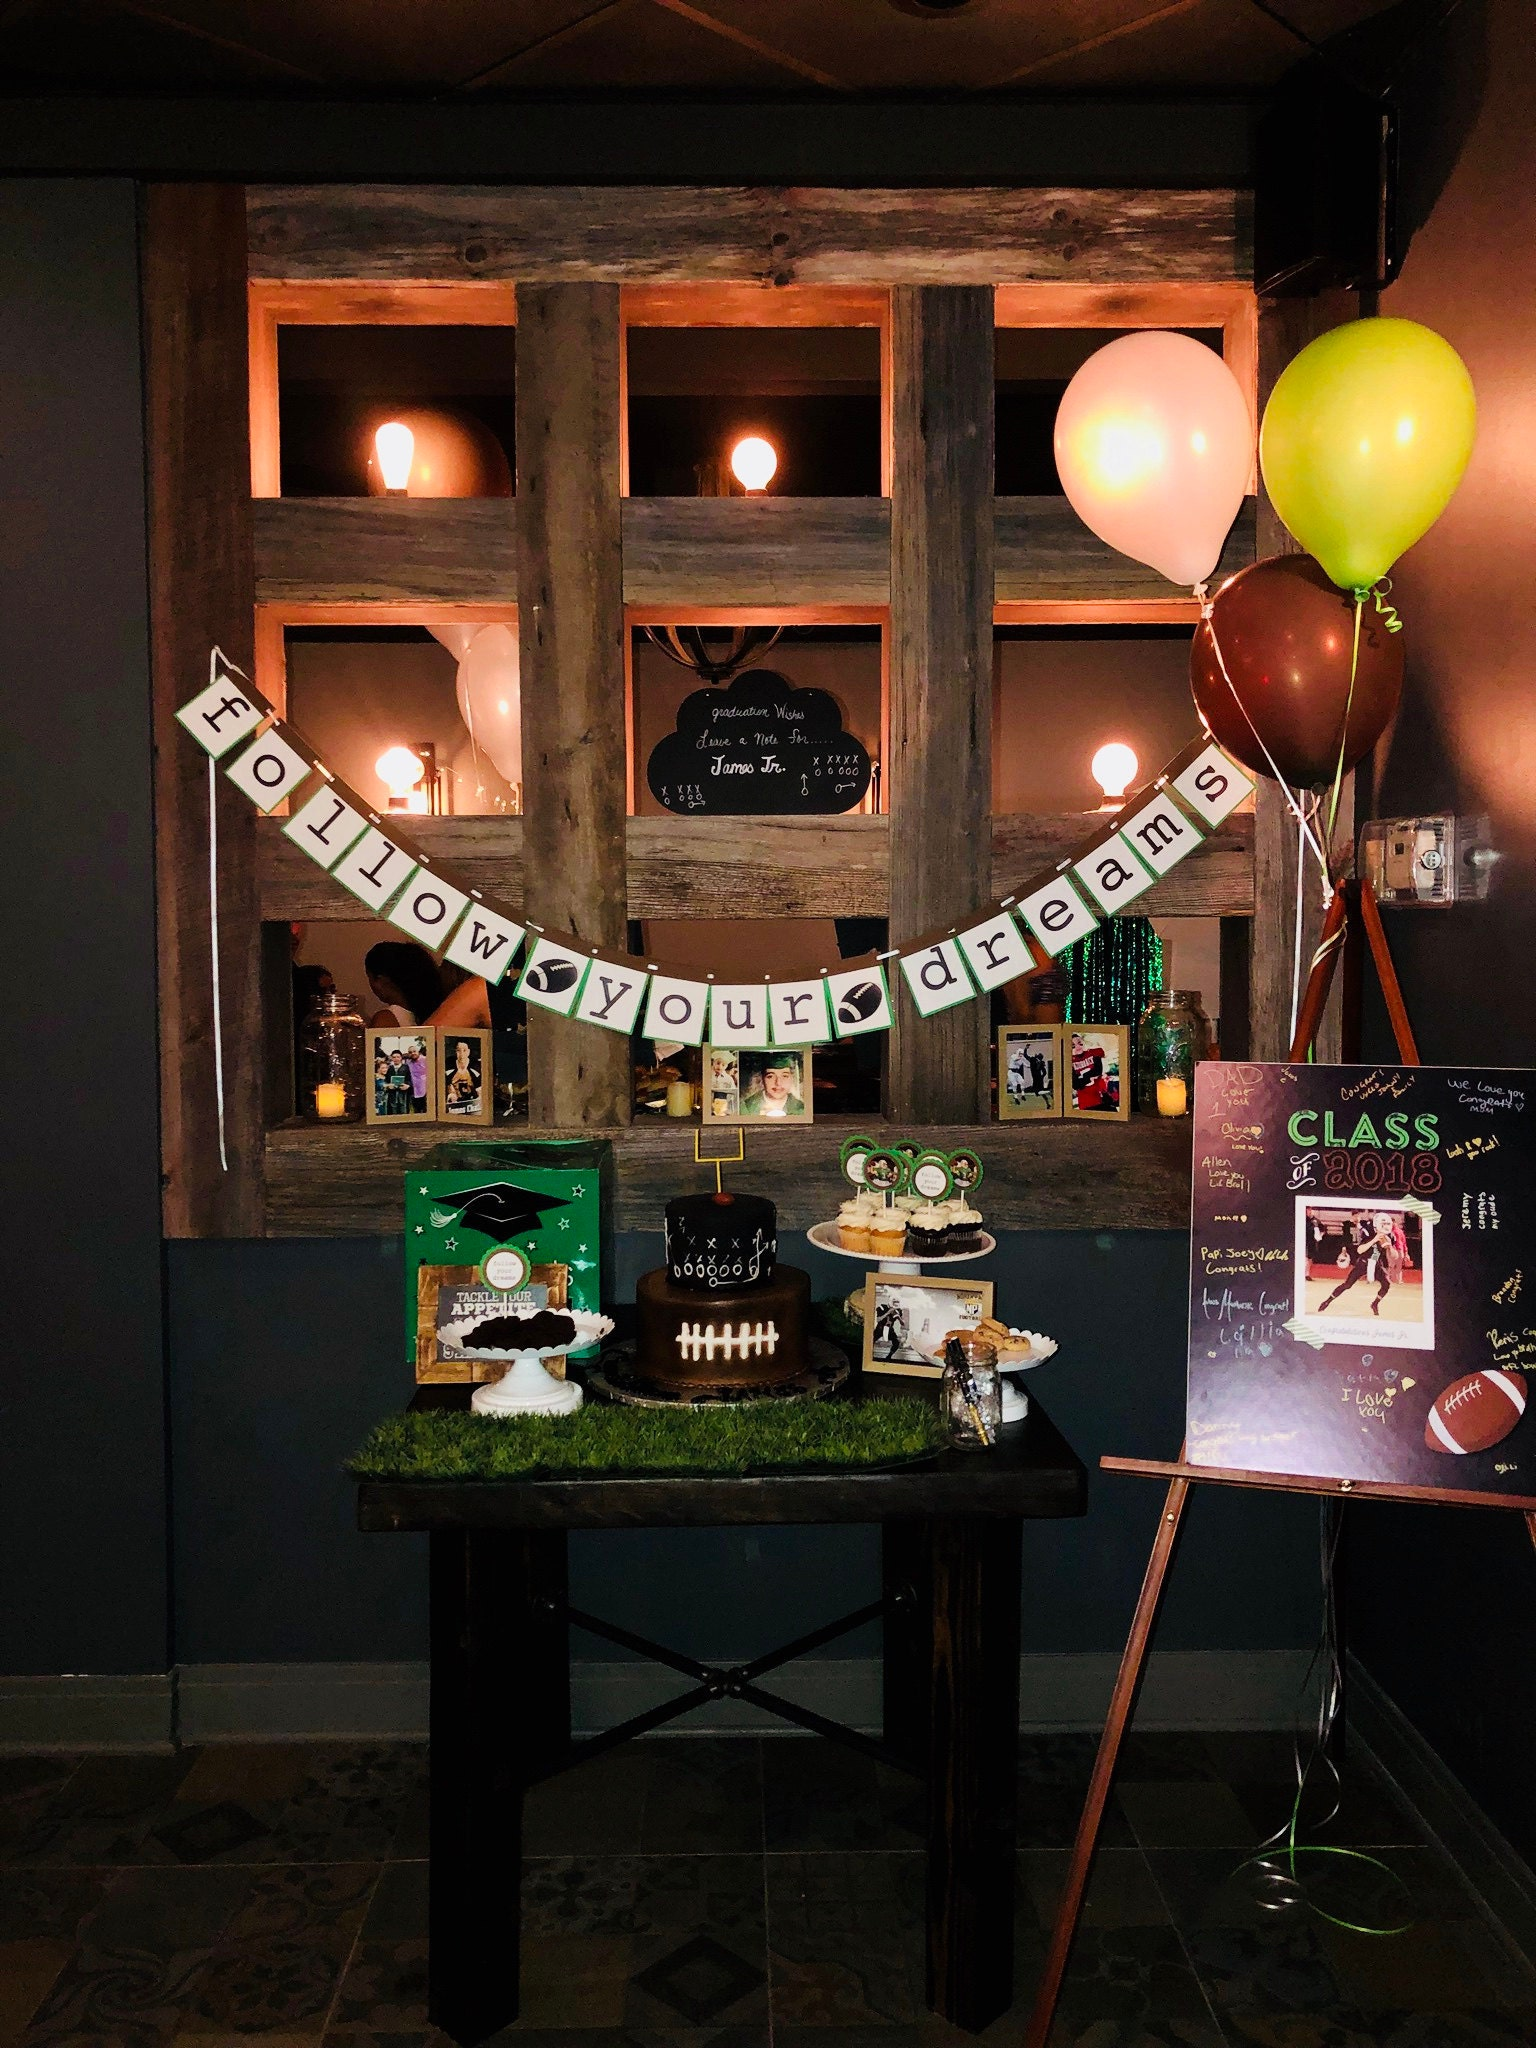 Follow your dreams graduation banner with football decorations and balloons